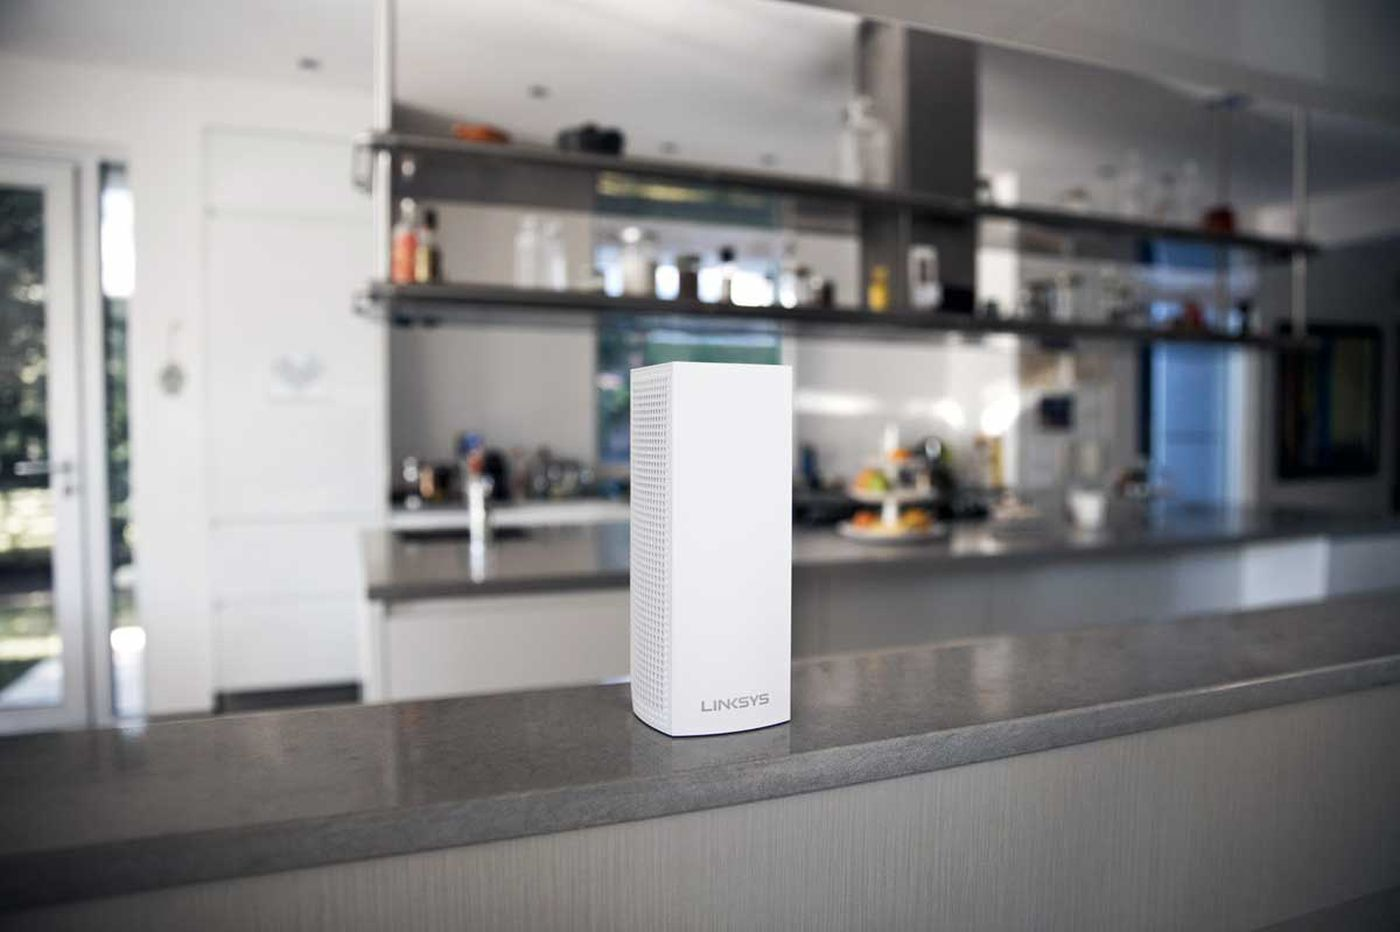 New mesh systems make whole-home WiFi easier